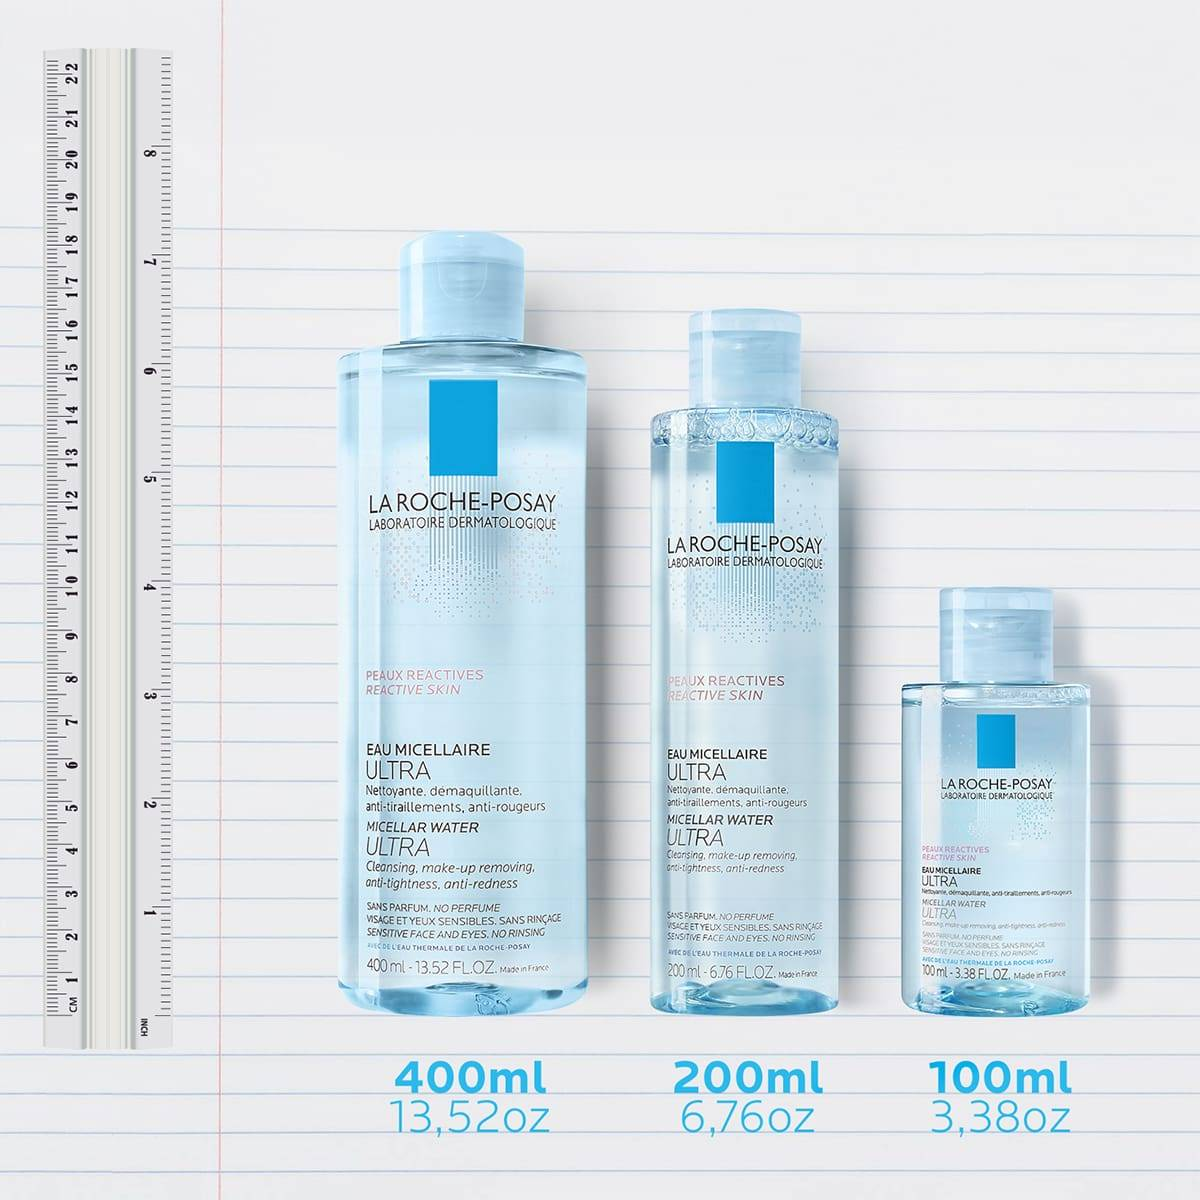 La Roche Posay ProductPage Micellar Water Ultra Family 3337875528108 3